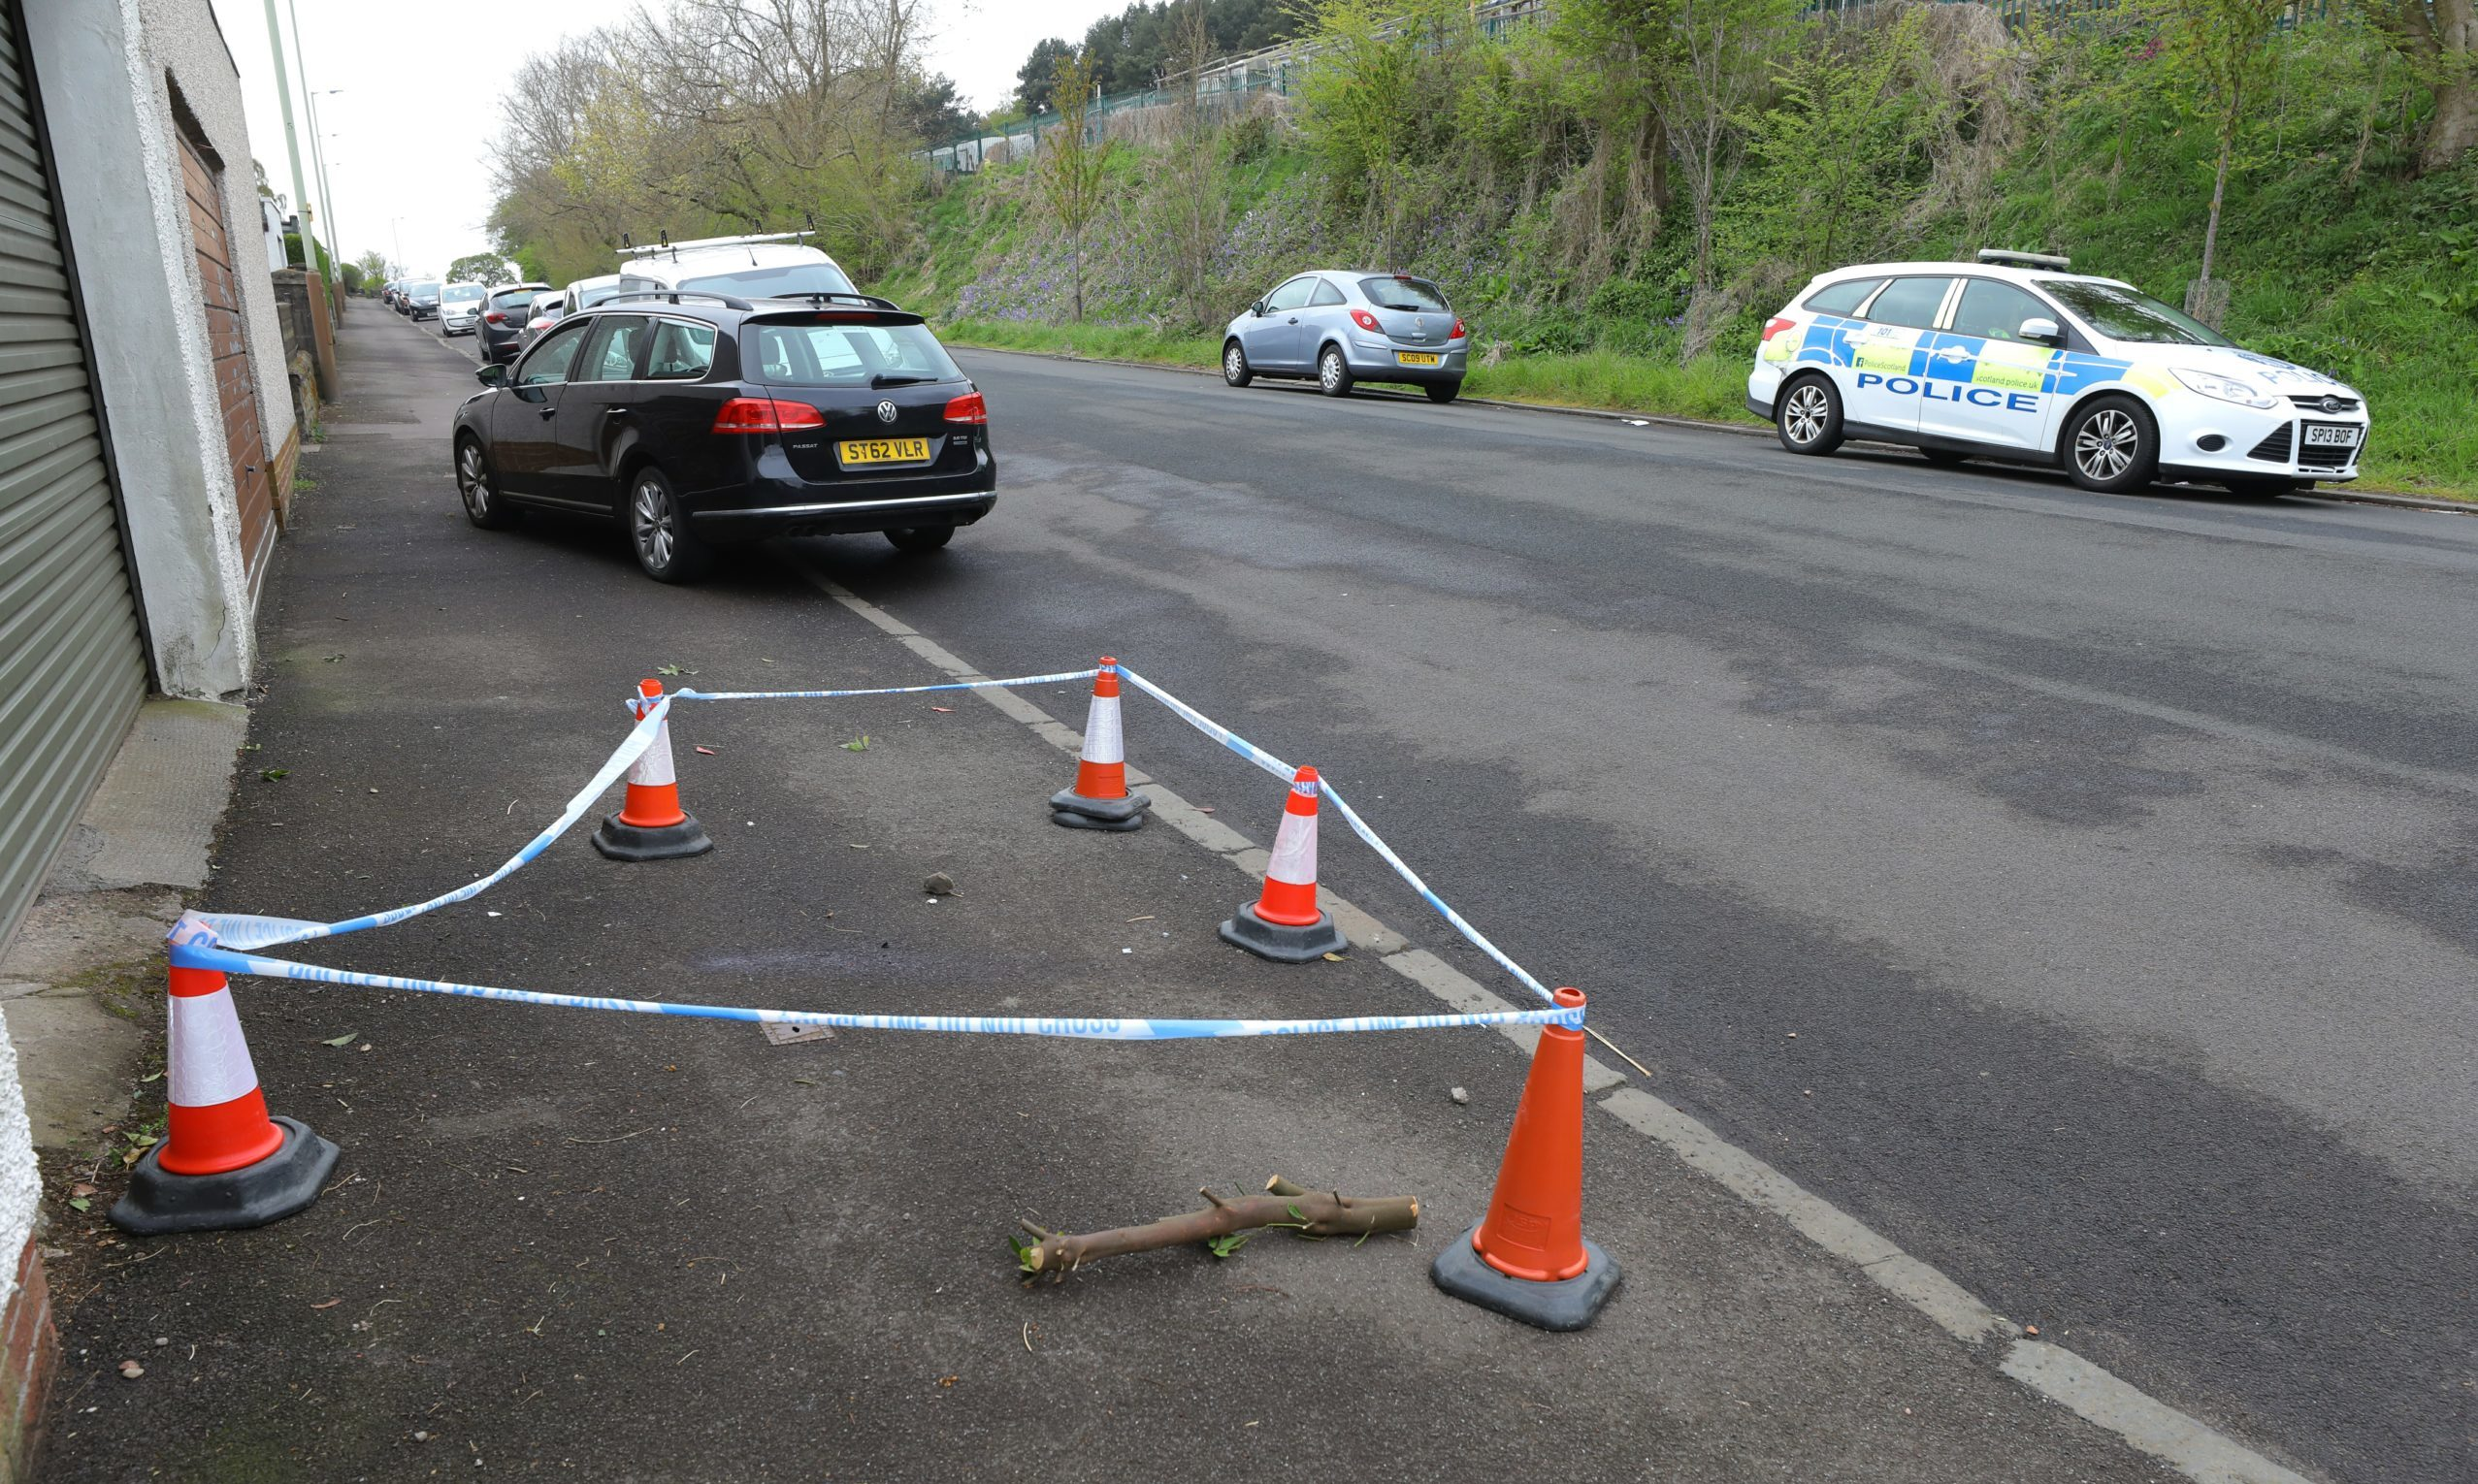 The scene at Kinghorne Road in Dundee, where a man collapsed prior to his death.